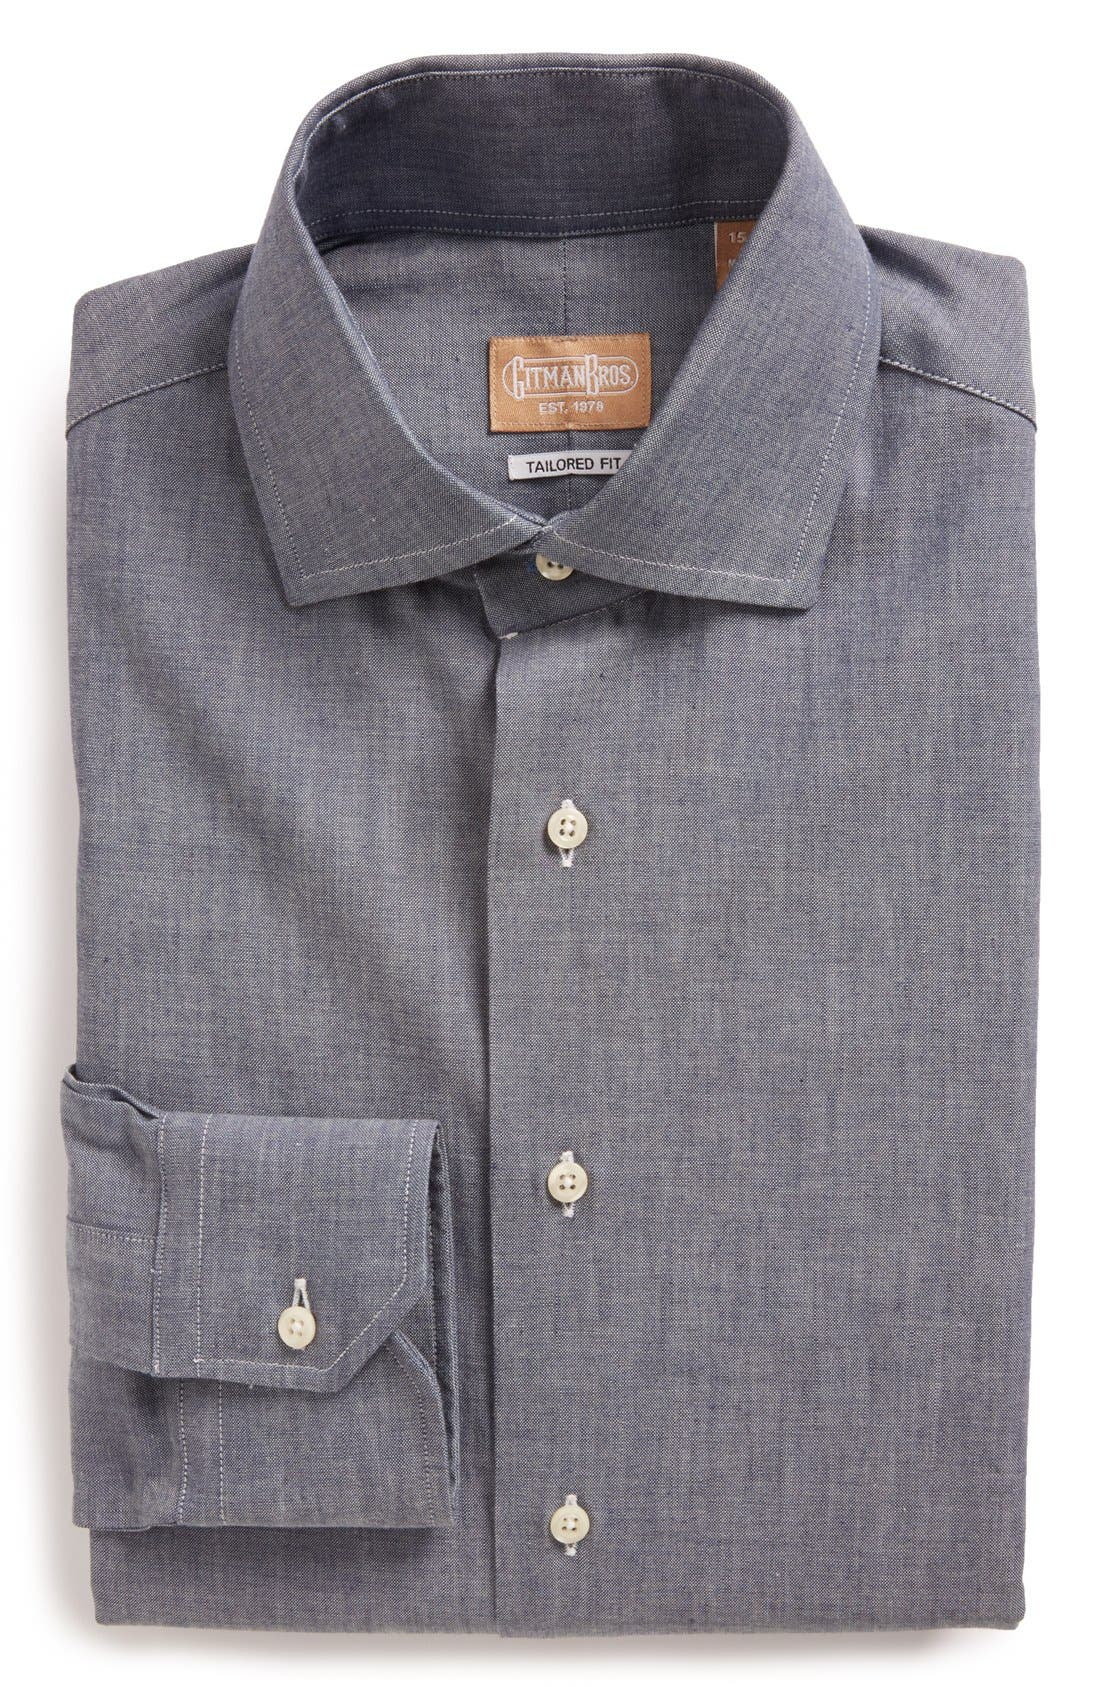 Alternate Image 1 Selected - Gitman Tailored Fit Chambray Dress Shirt